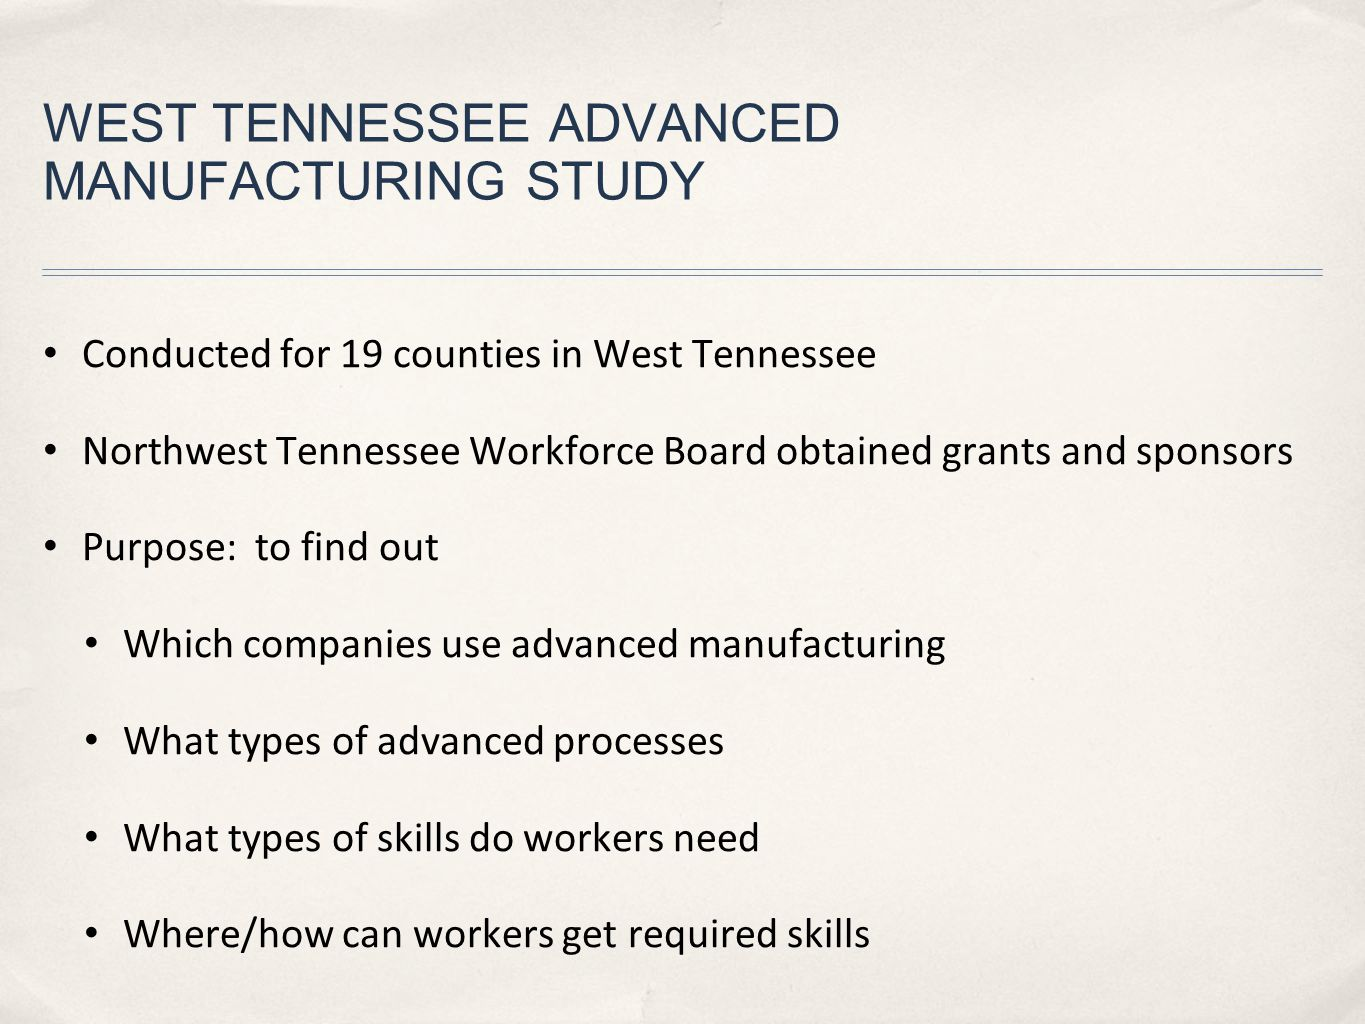 WEST TENNESSEE ADVANCED MANUFACTURING STUDY Conducted for 19 counties in West Tennessee Northwest Tennessee Workforce Board obtained grants and sponso